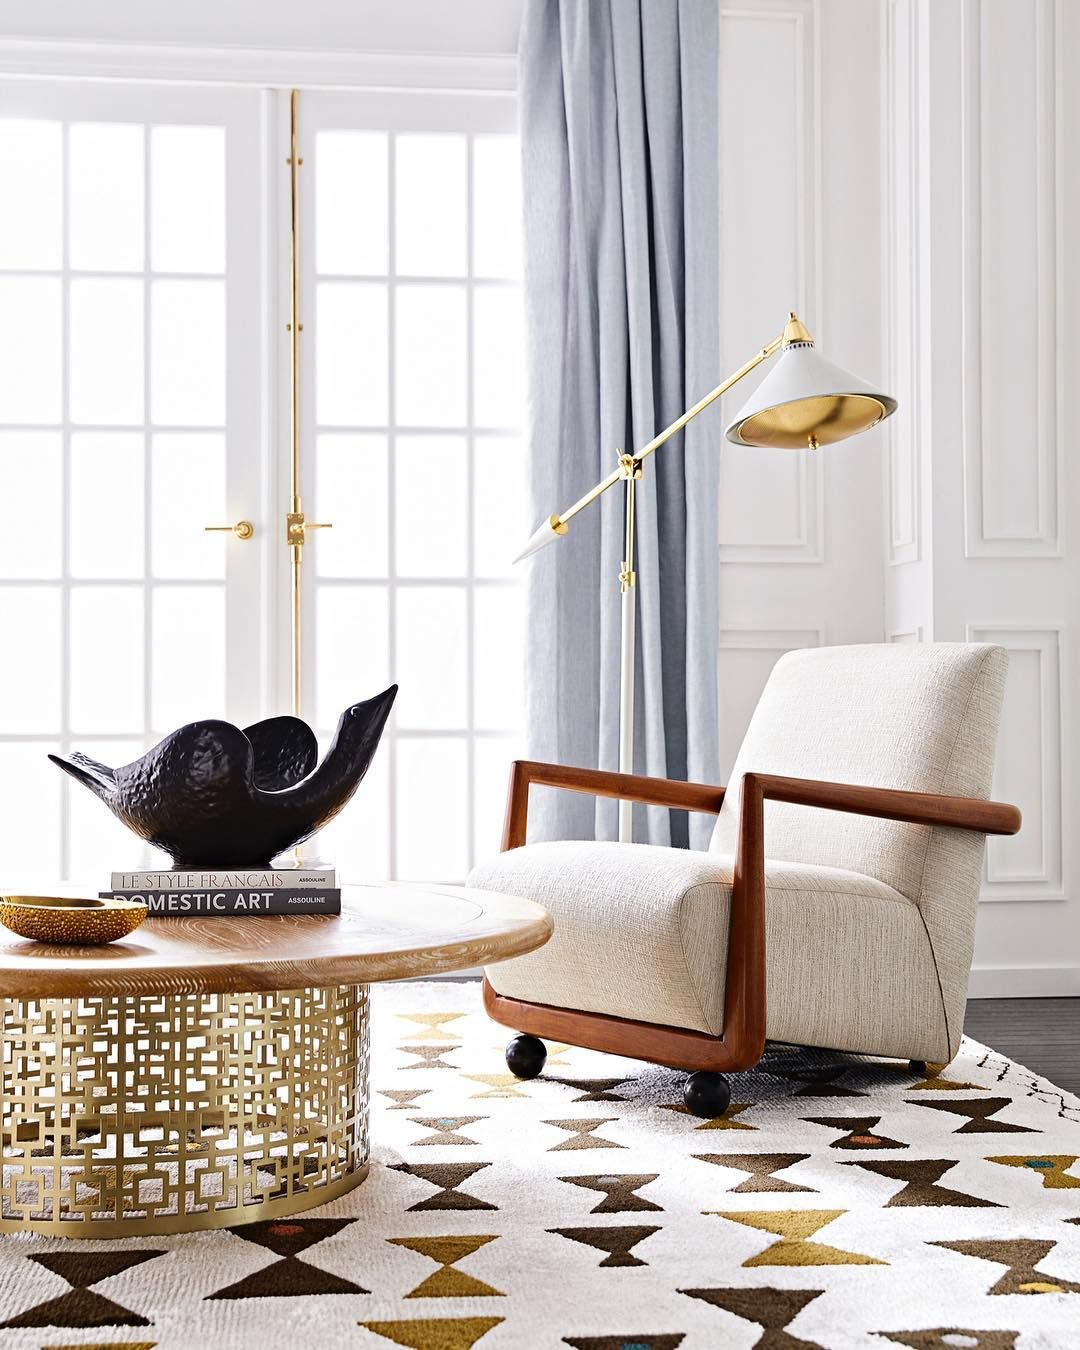 jonathanadler | Decor | Pinterest | Living rooms, Interiors and Room